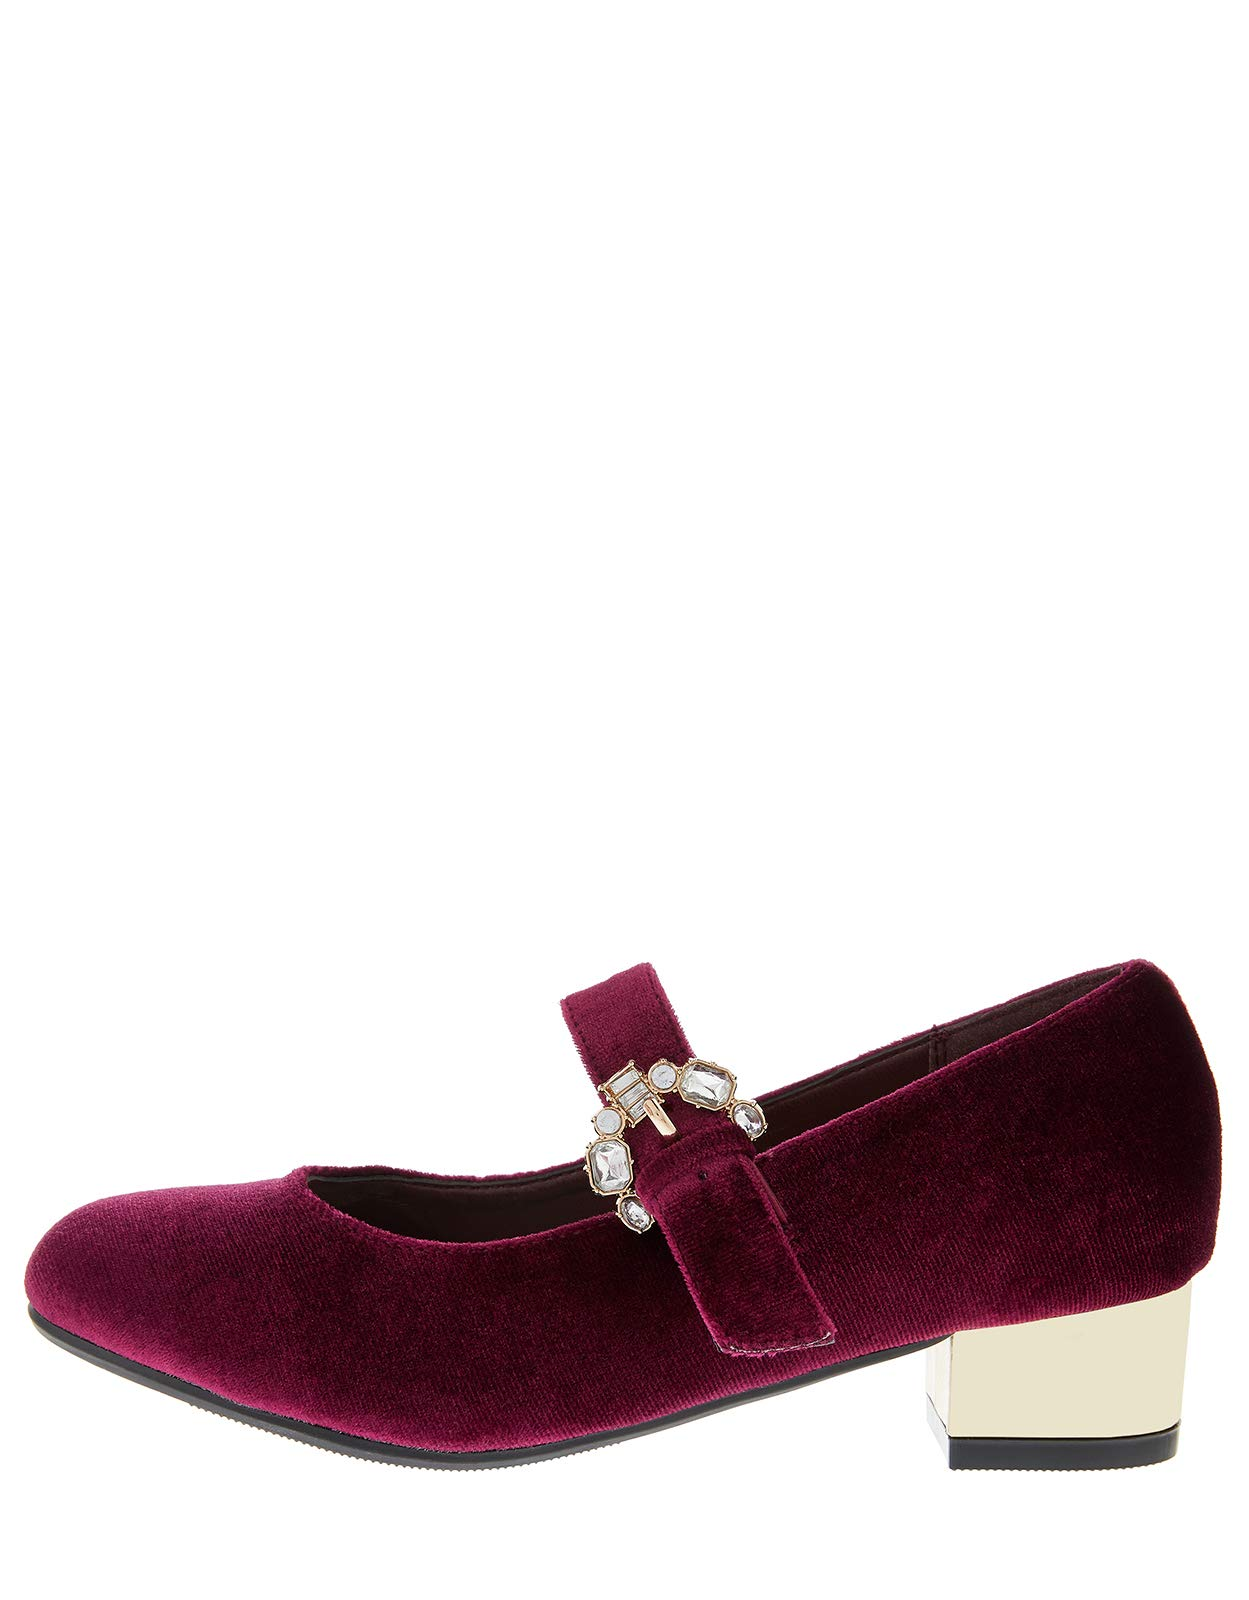 Accessorize Briony Buckle Velvet Charleston Shoes - Girls - US 12 Shoe